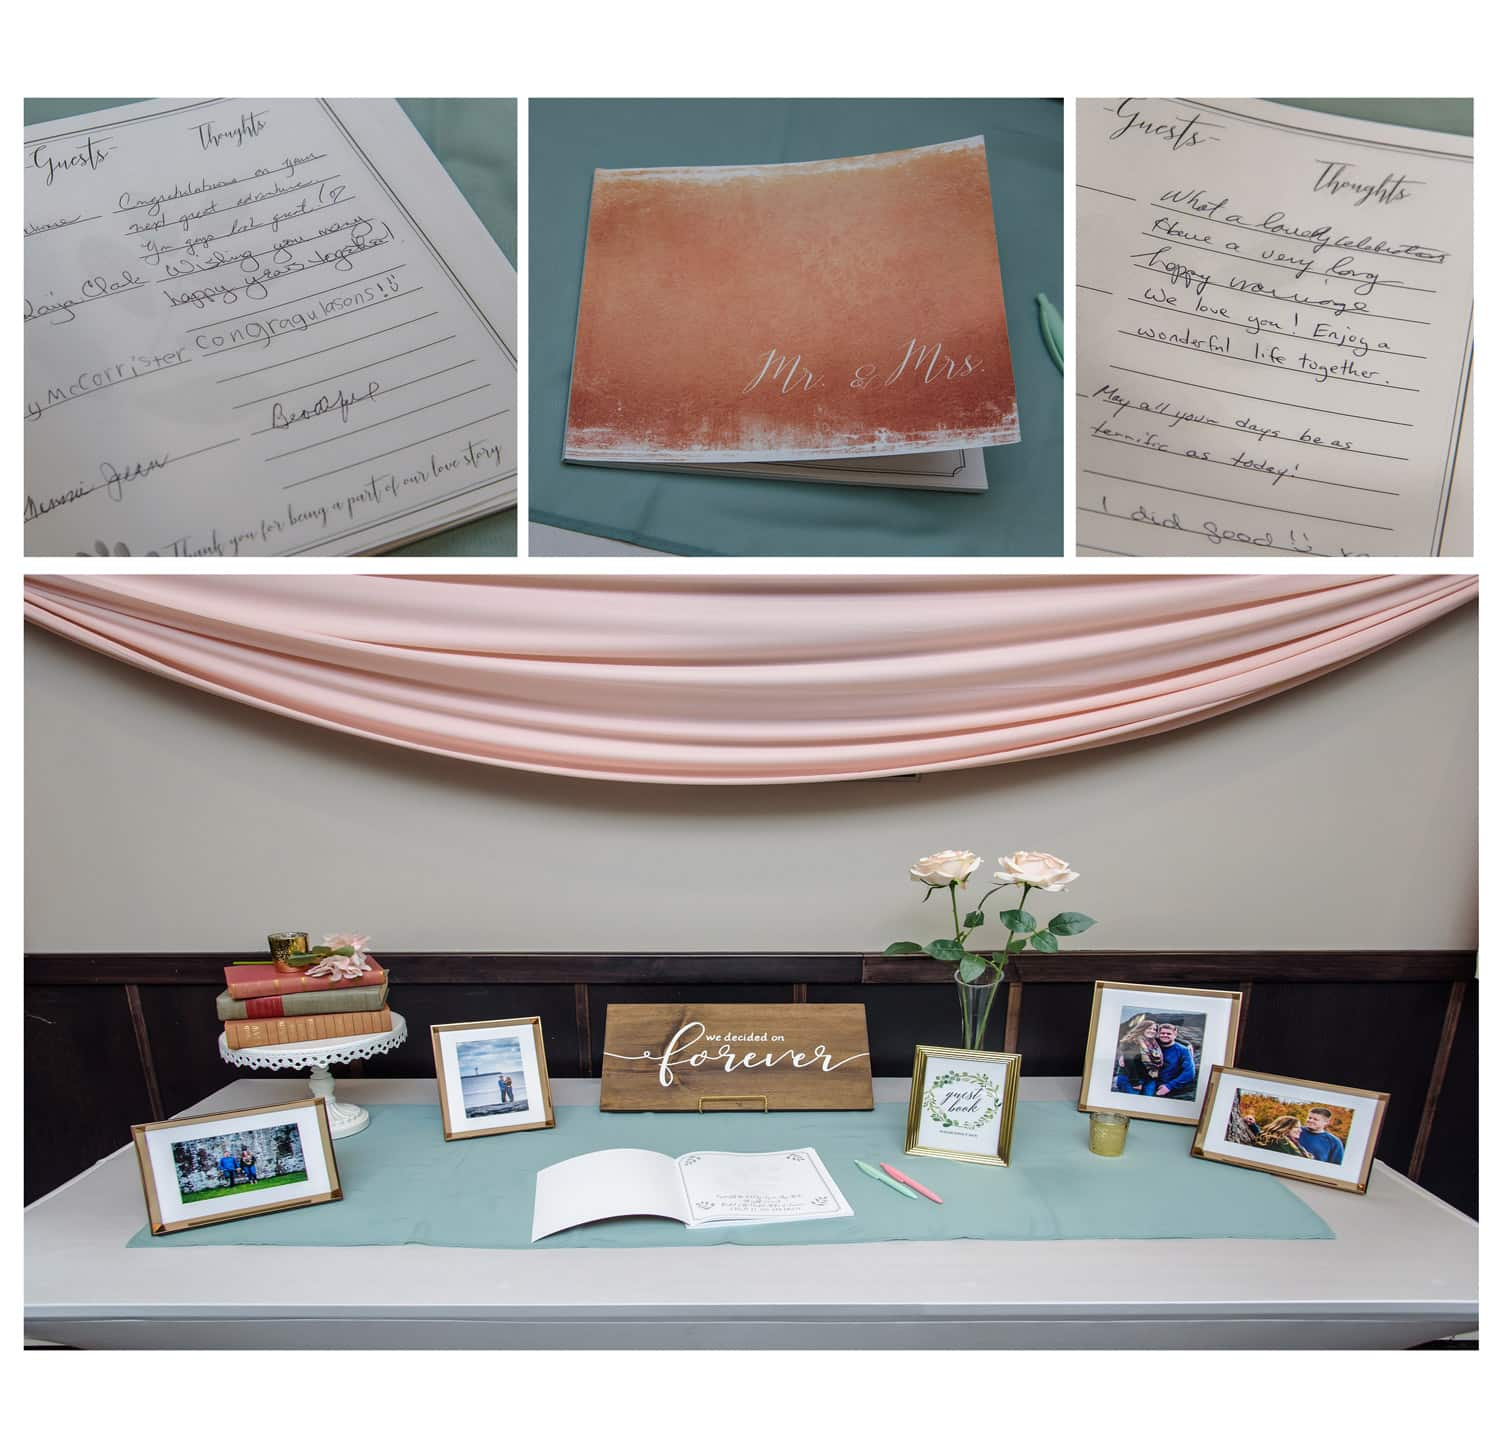 a photo guest book for wedding guests to sign filled with engagement photos of the bride and groom